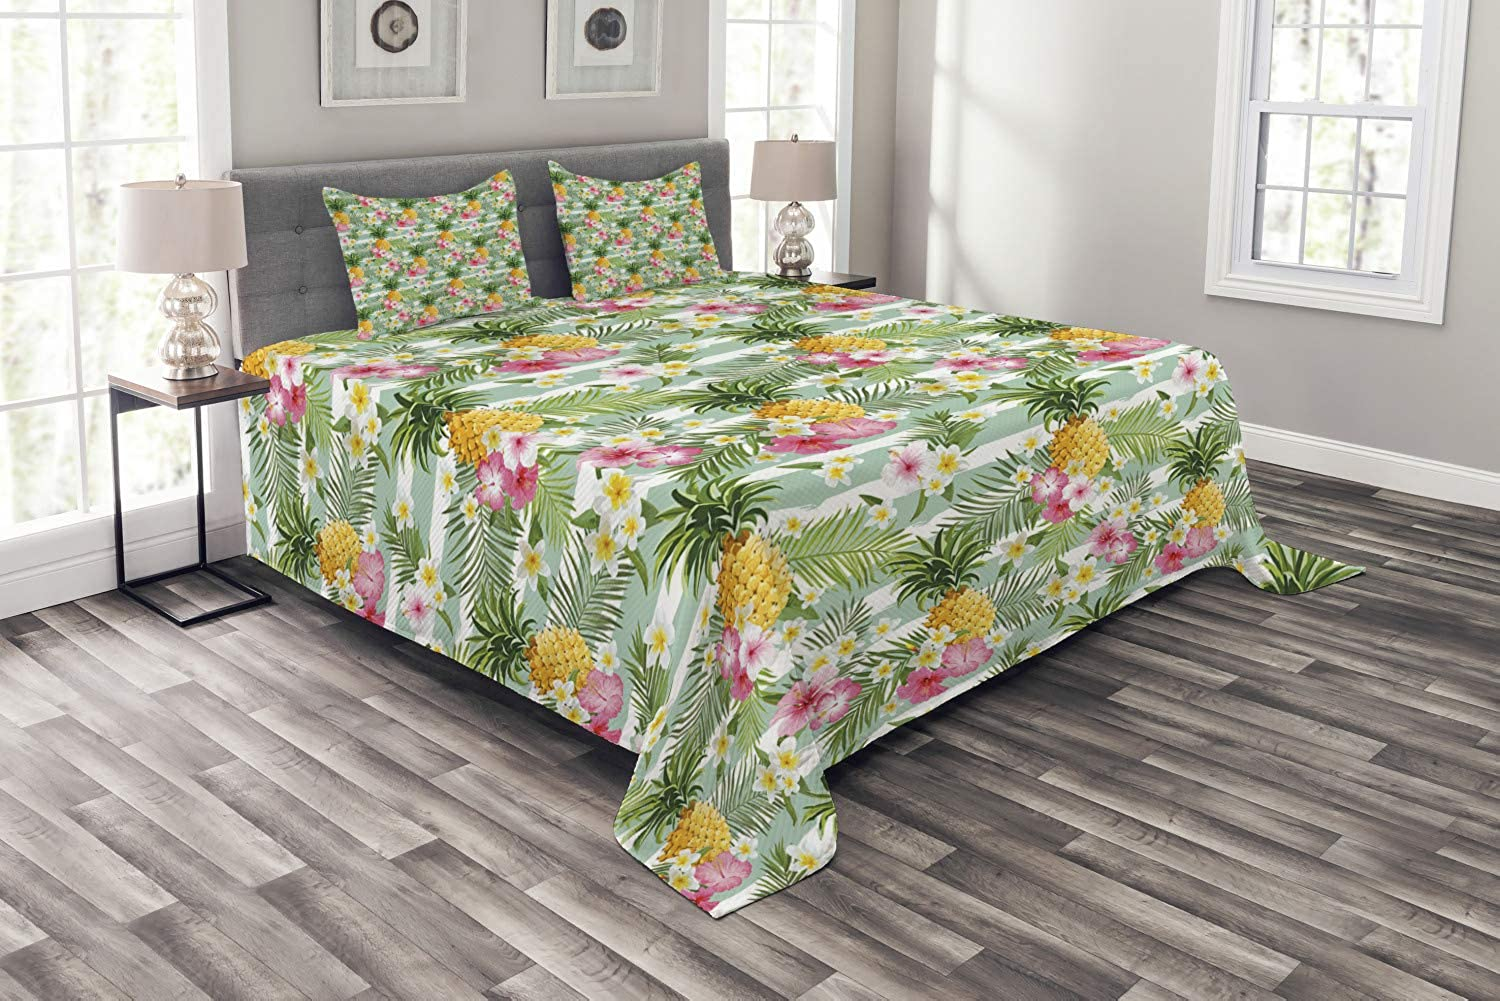 Ambesonne Fruits Bedspread Set Queen Size, Tropical Plants Botany Exotic Daffodil Geometrical Lily Surreal Exotic Beauty Theme, 3 Piece Decorative Quilted Coverlet with 2 Pillow Shams, Multicolor